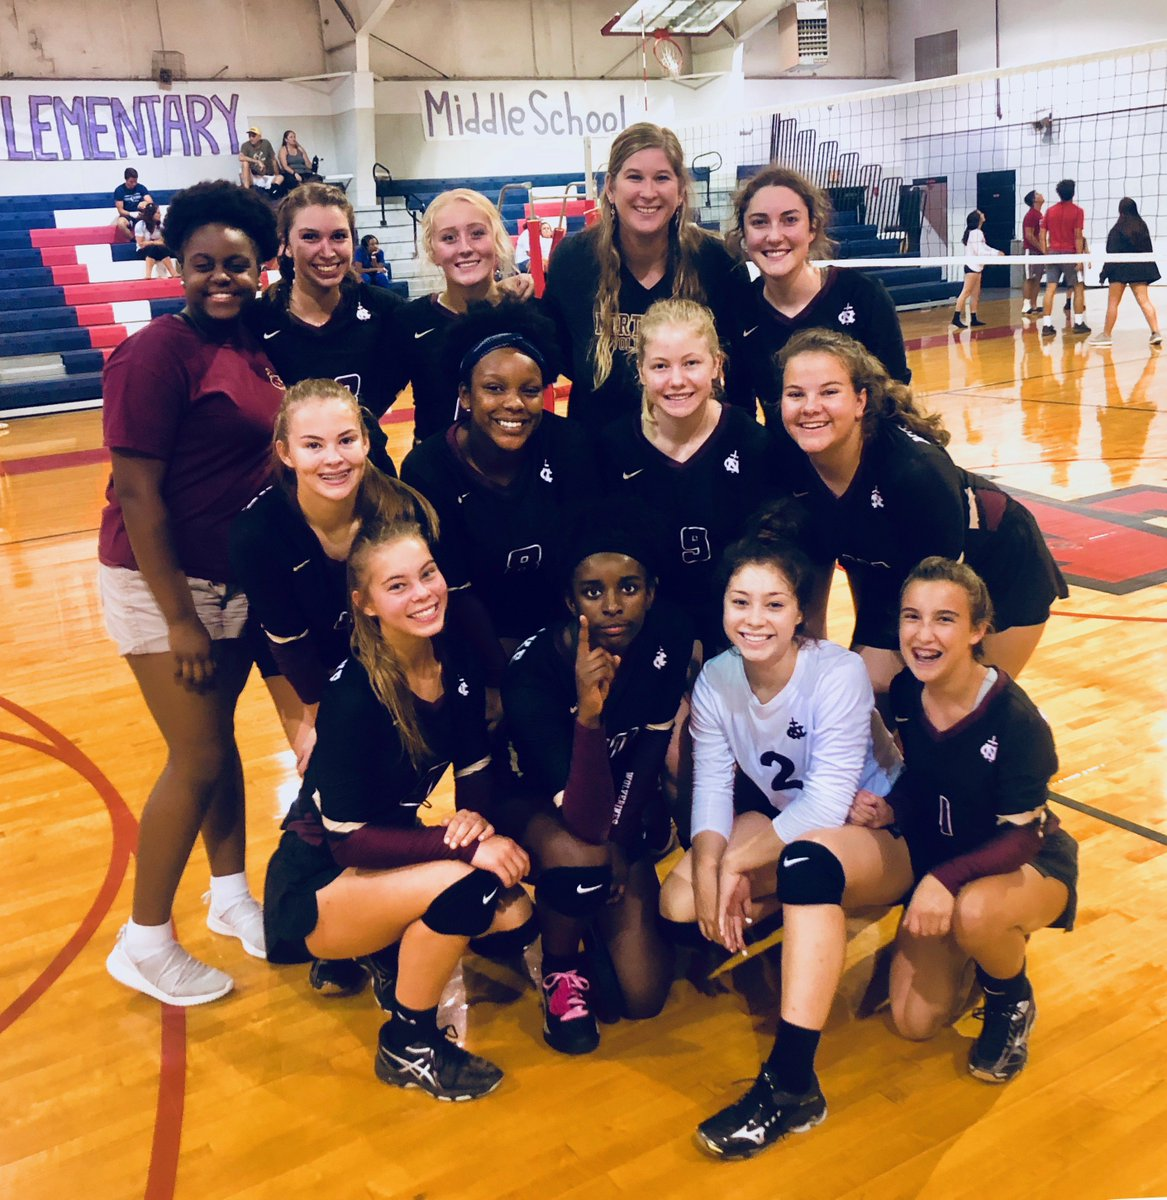 northlake christian on twitter let s get a few likes for our lady